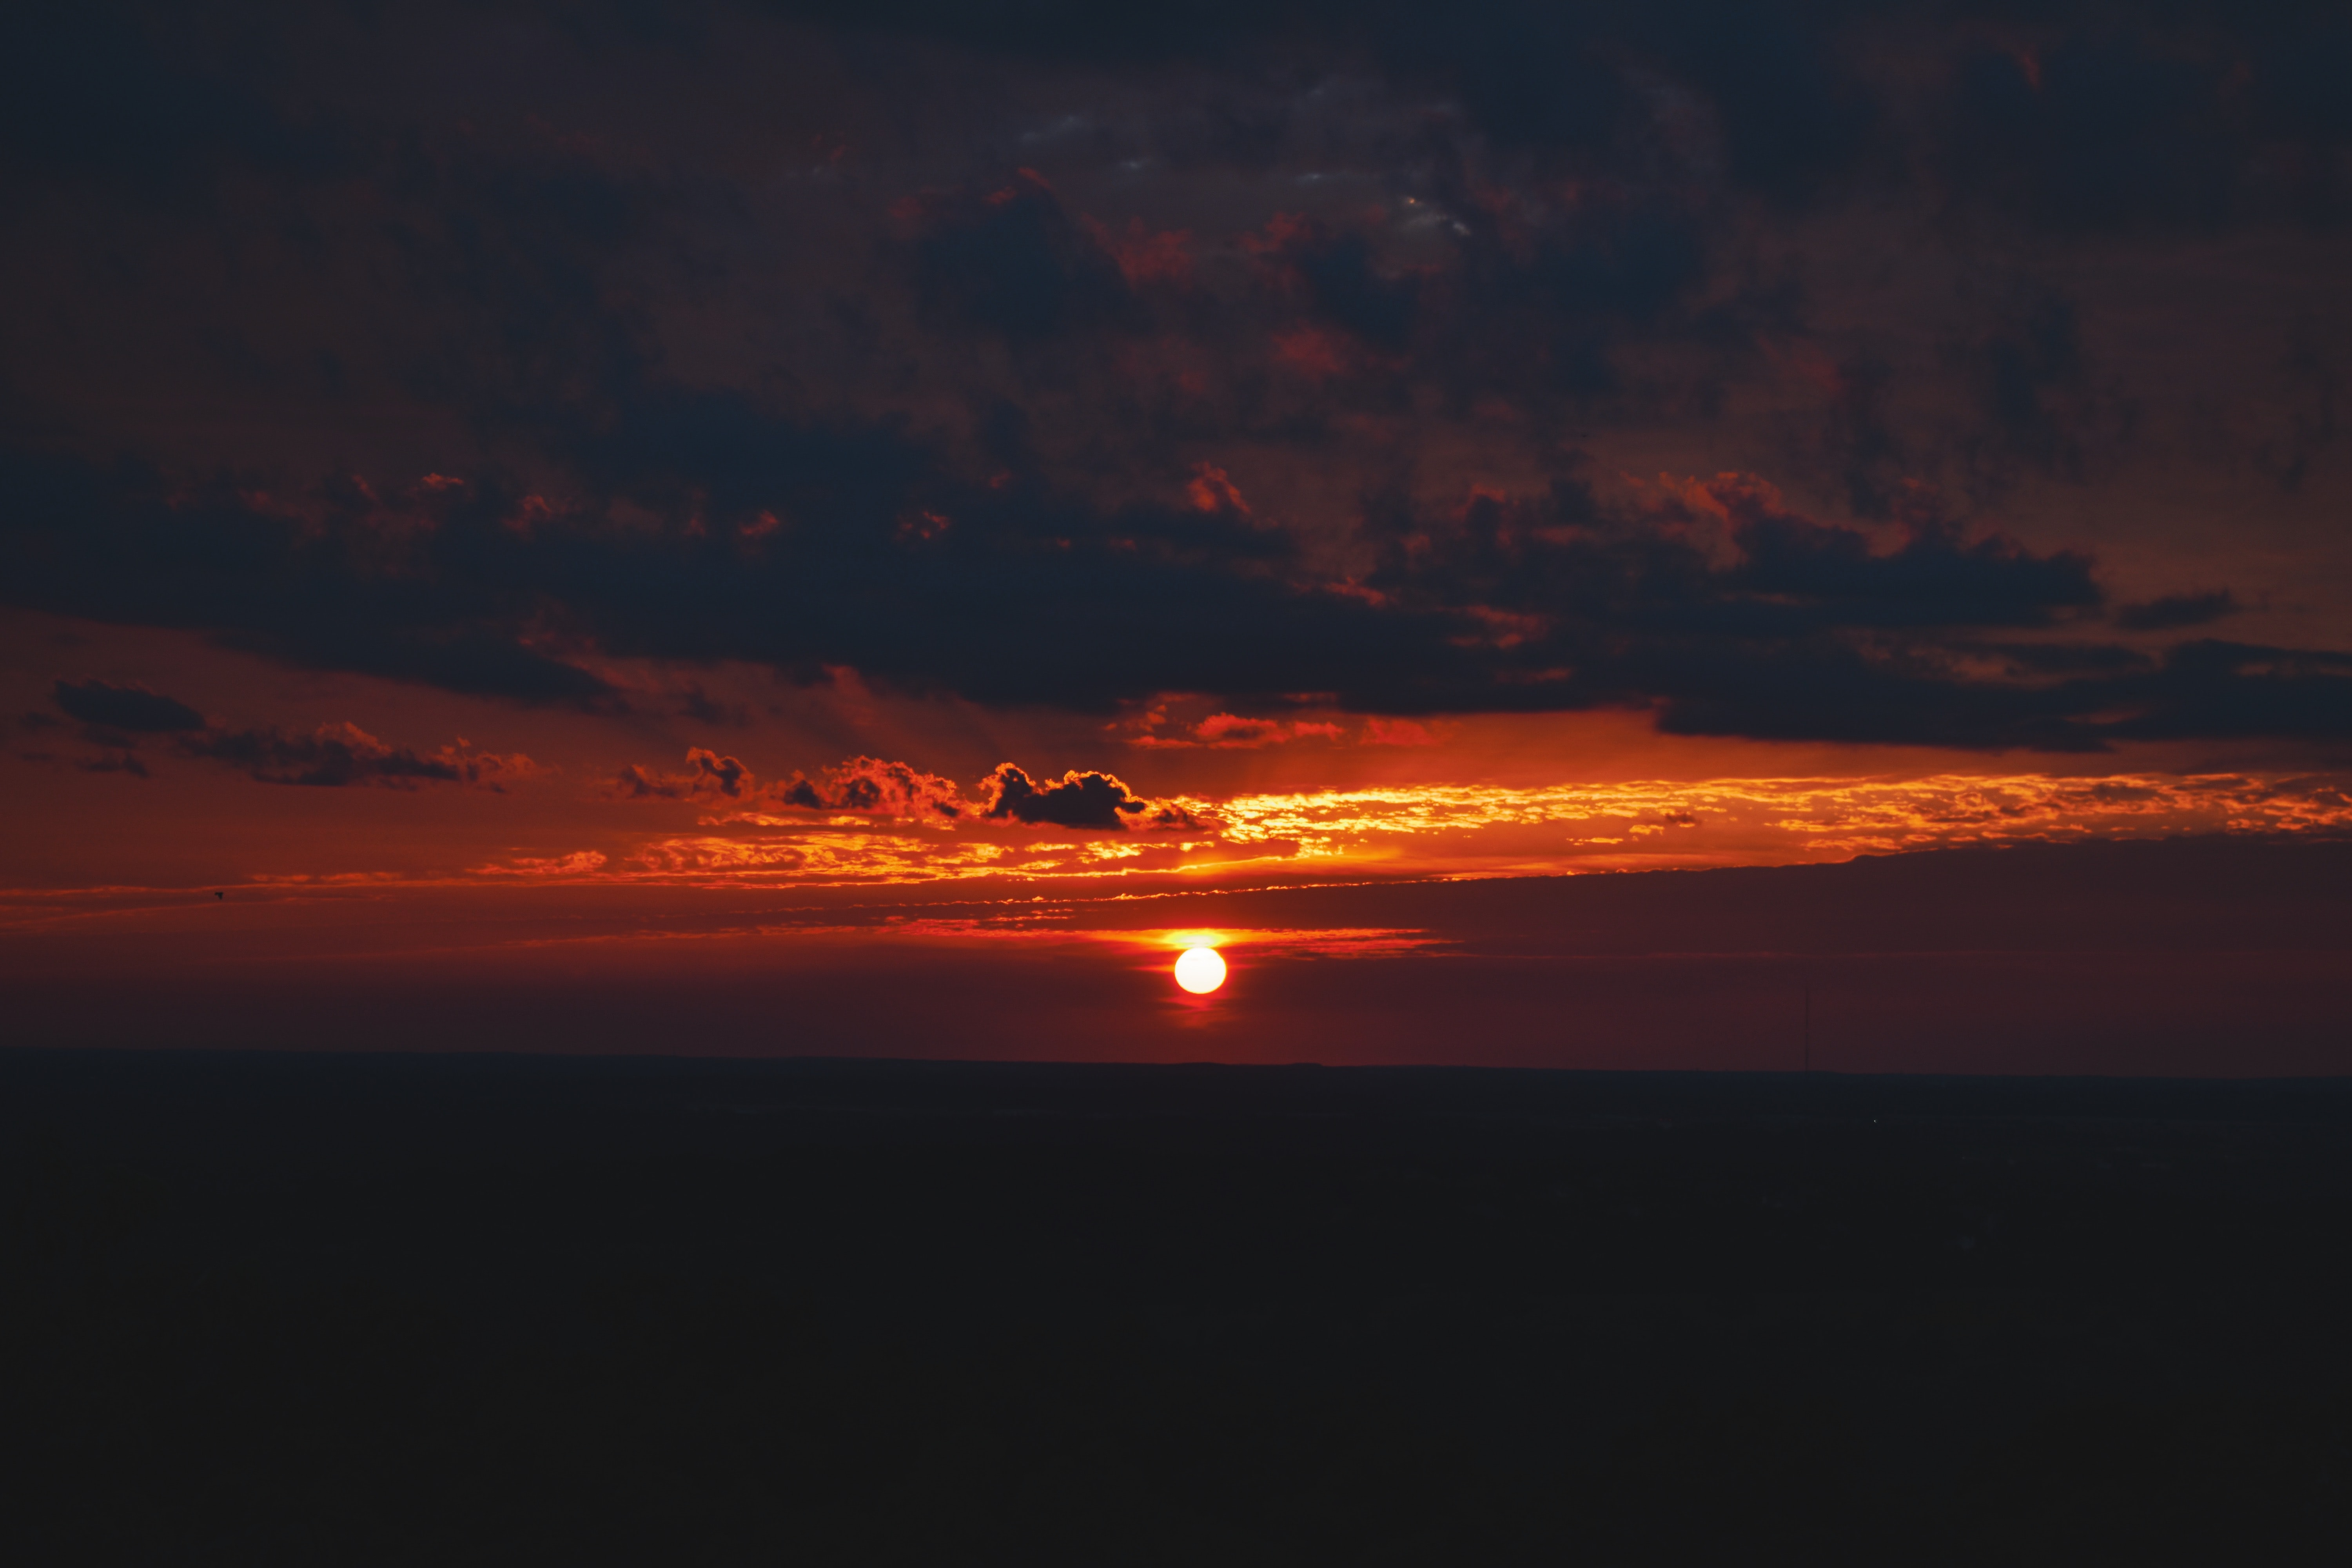 Red setting sun and clouds over a flat horizon